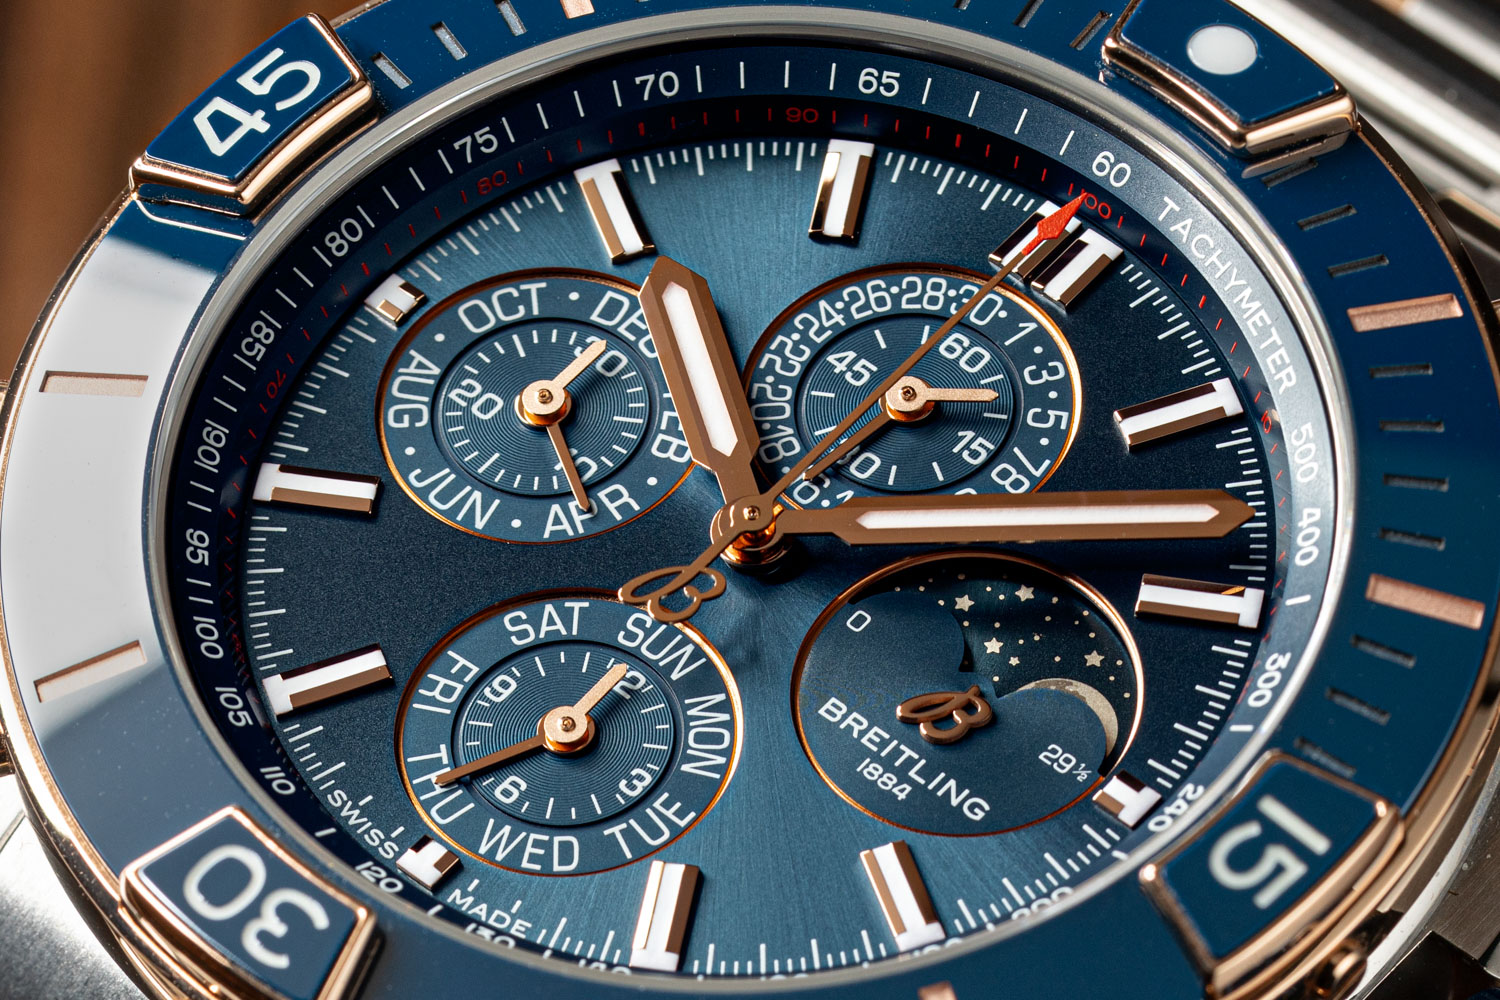 Super Chronomat 44 Four-Year Calendar in the blue dial variation has stainless steel case and its bezel is 18 k red gold with blue ceramic insert, unidirectional ratcheted, indexes and Super-LumiNova® coated rider tab numerals (©Revolution)